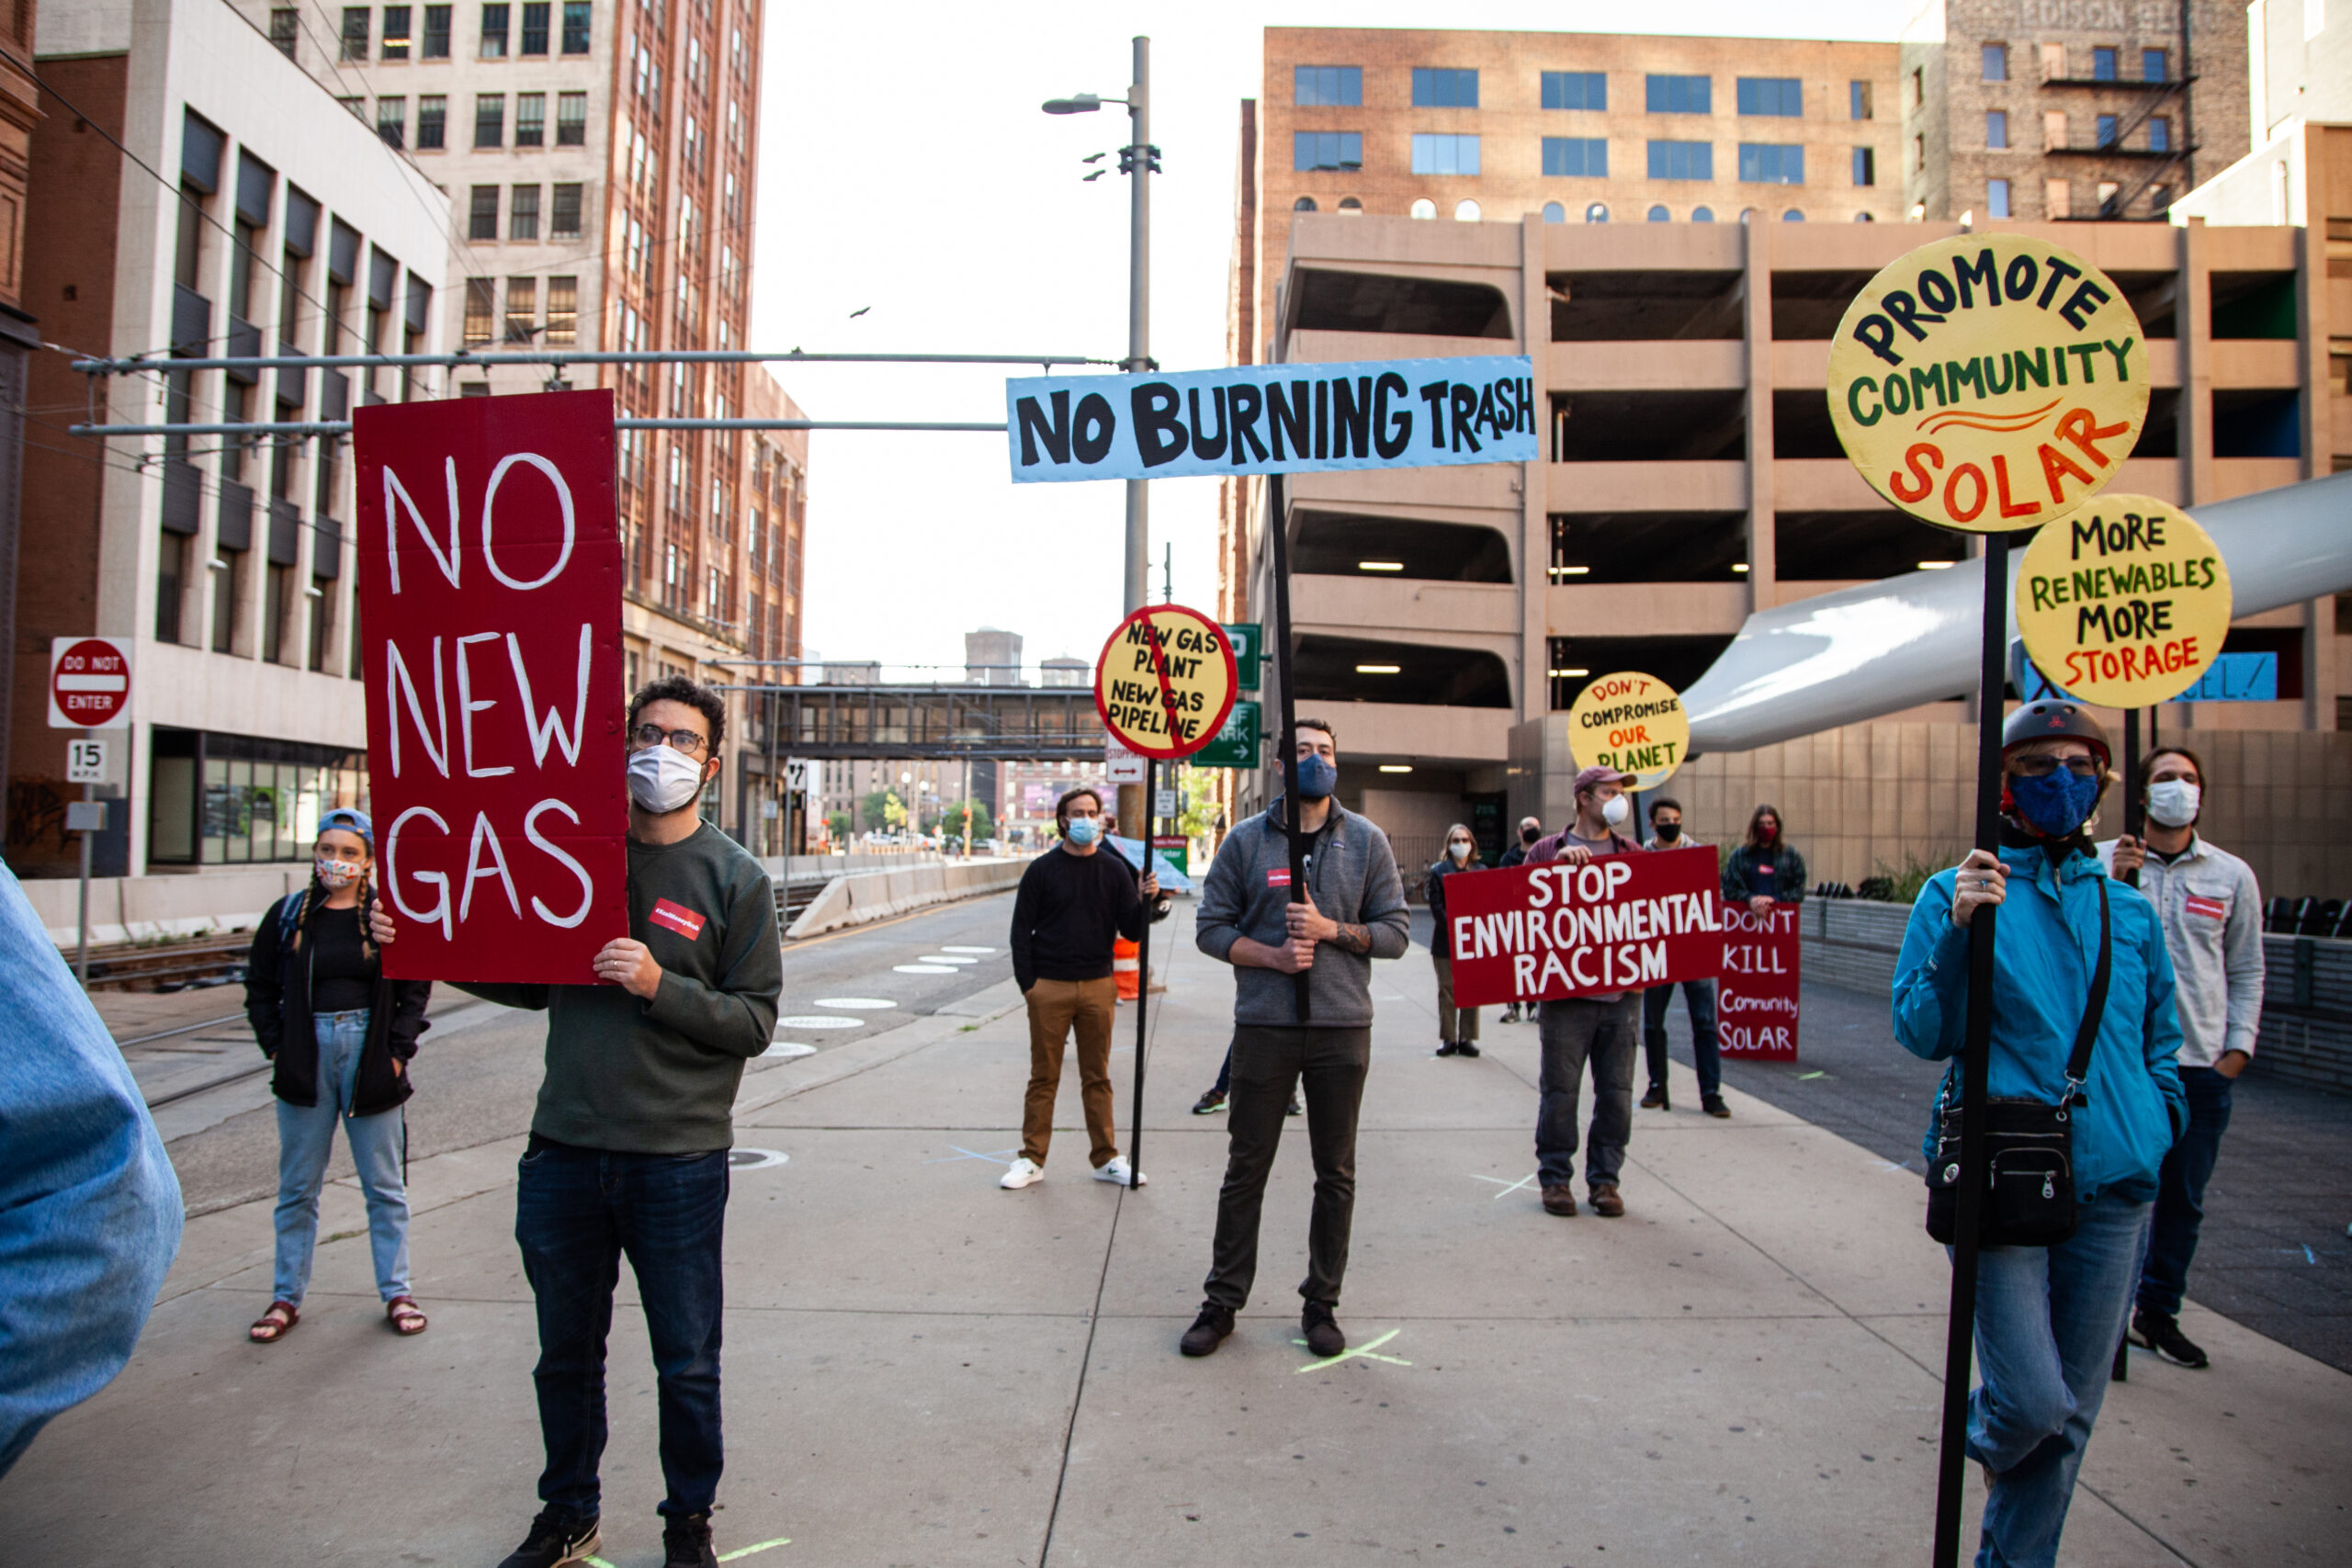 Minnesotans Tell Xcel Energy to Reject Fossil Fuels, Focus on Clean Energy